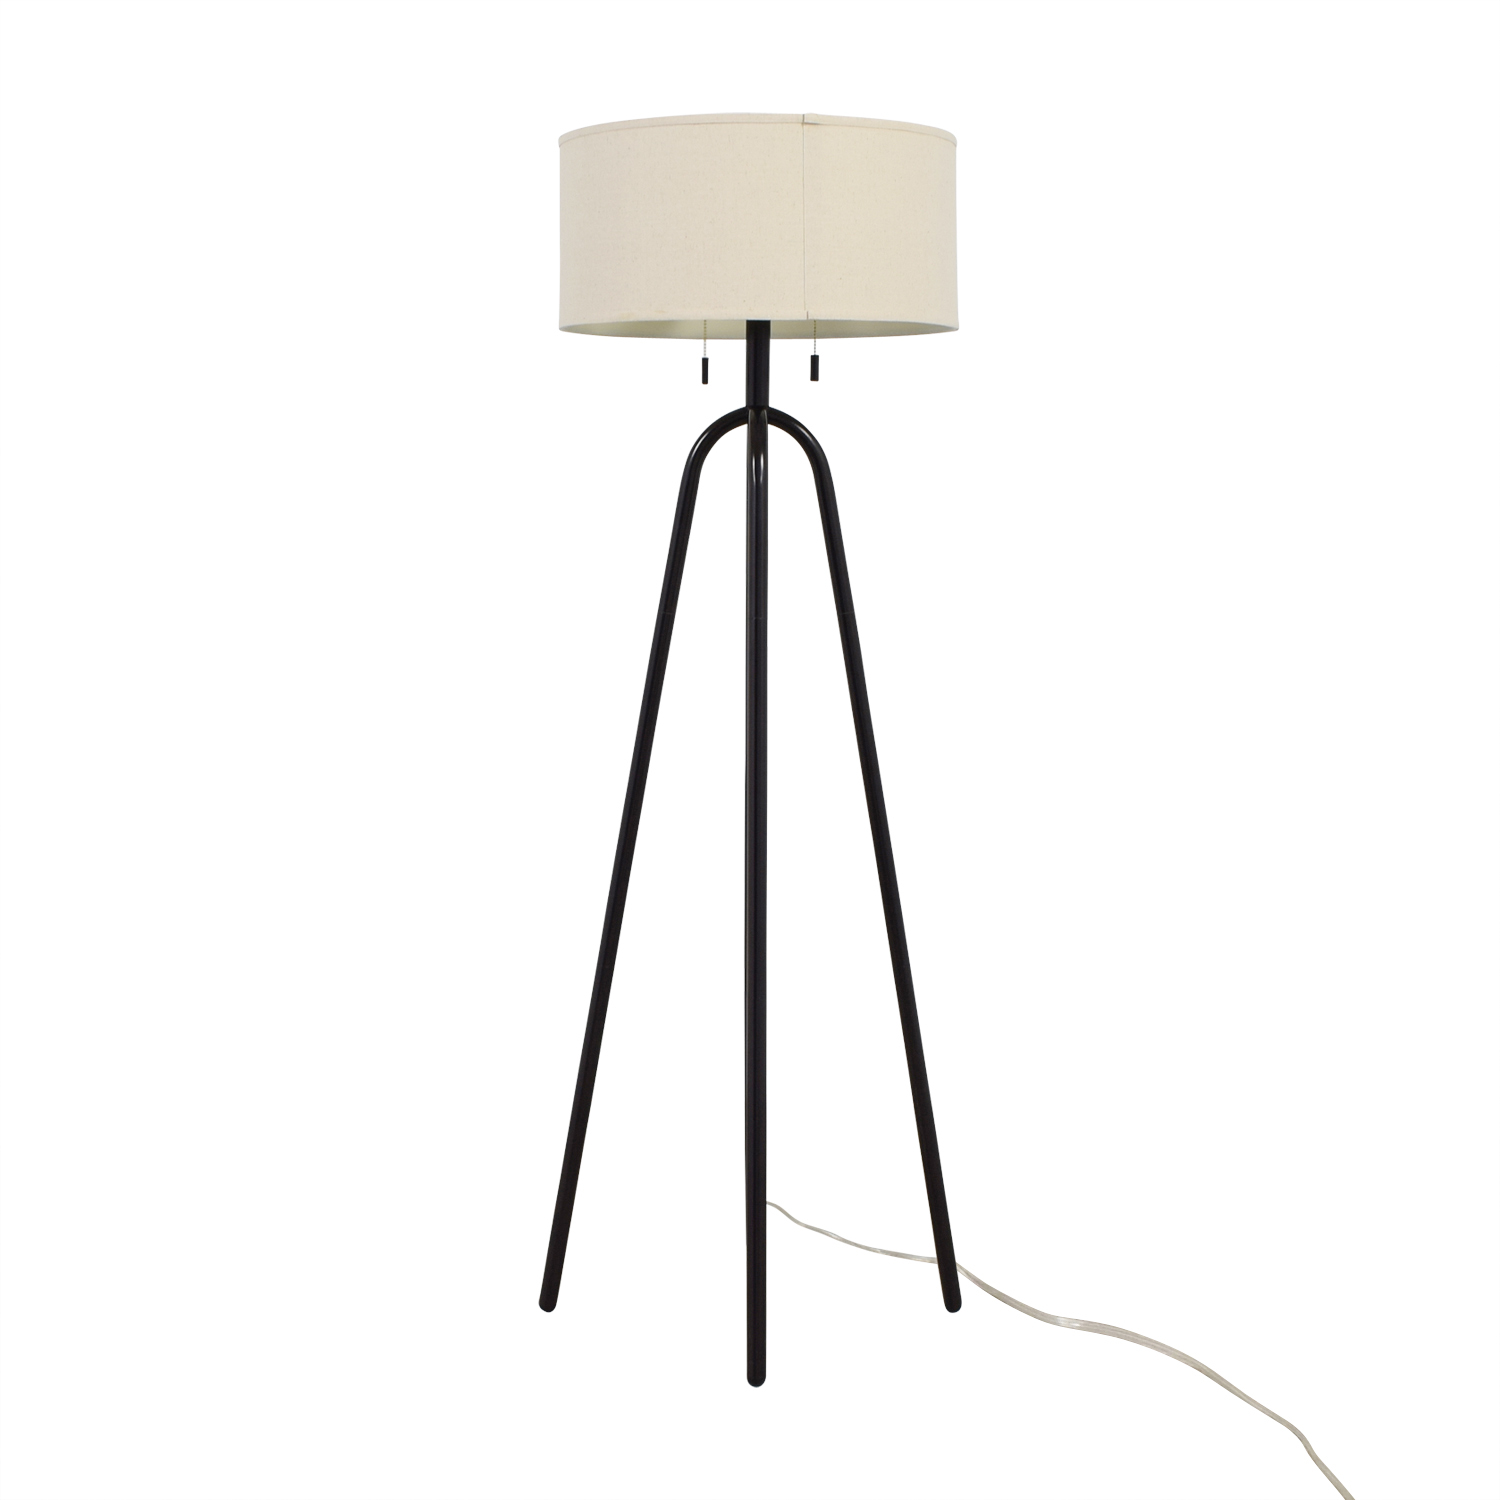 Modern Tripod Floor Lamp used